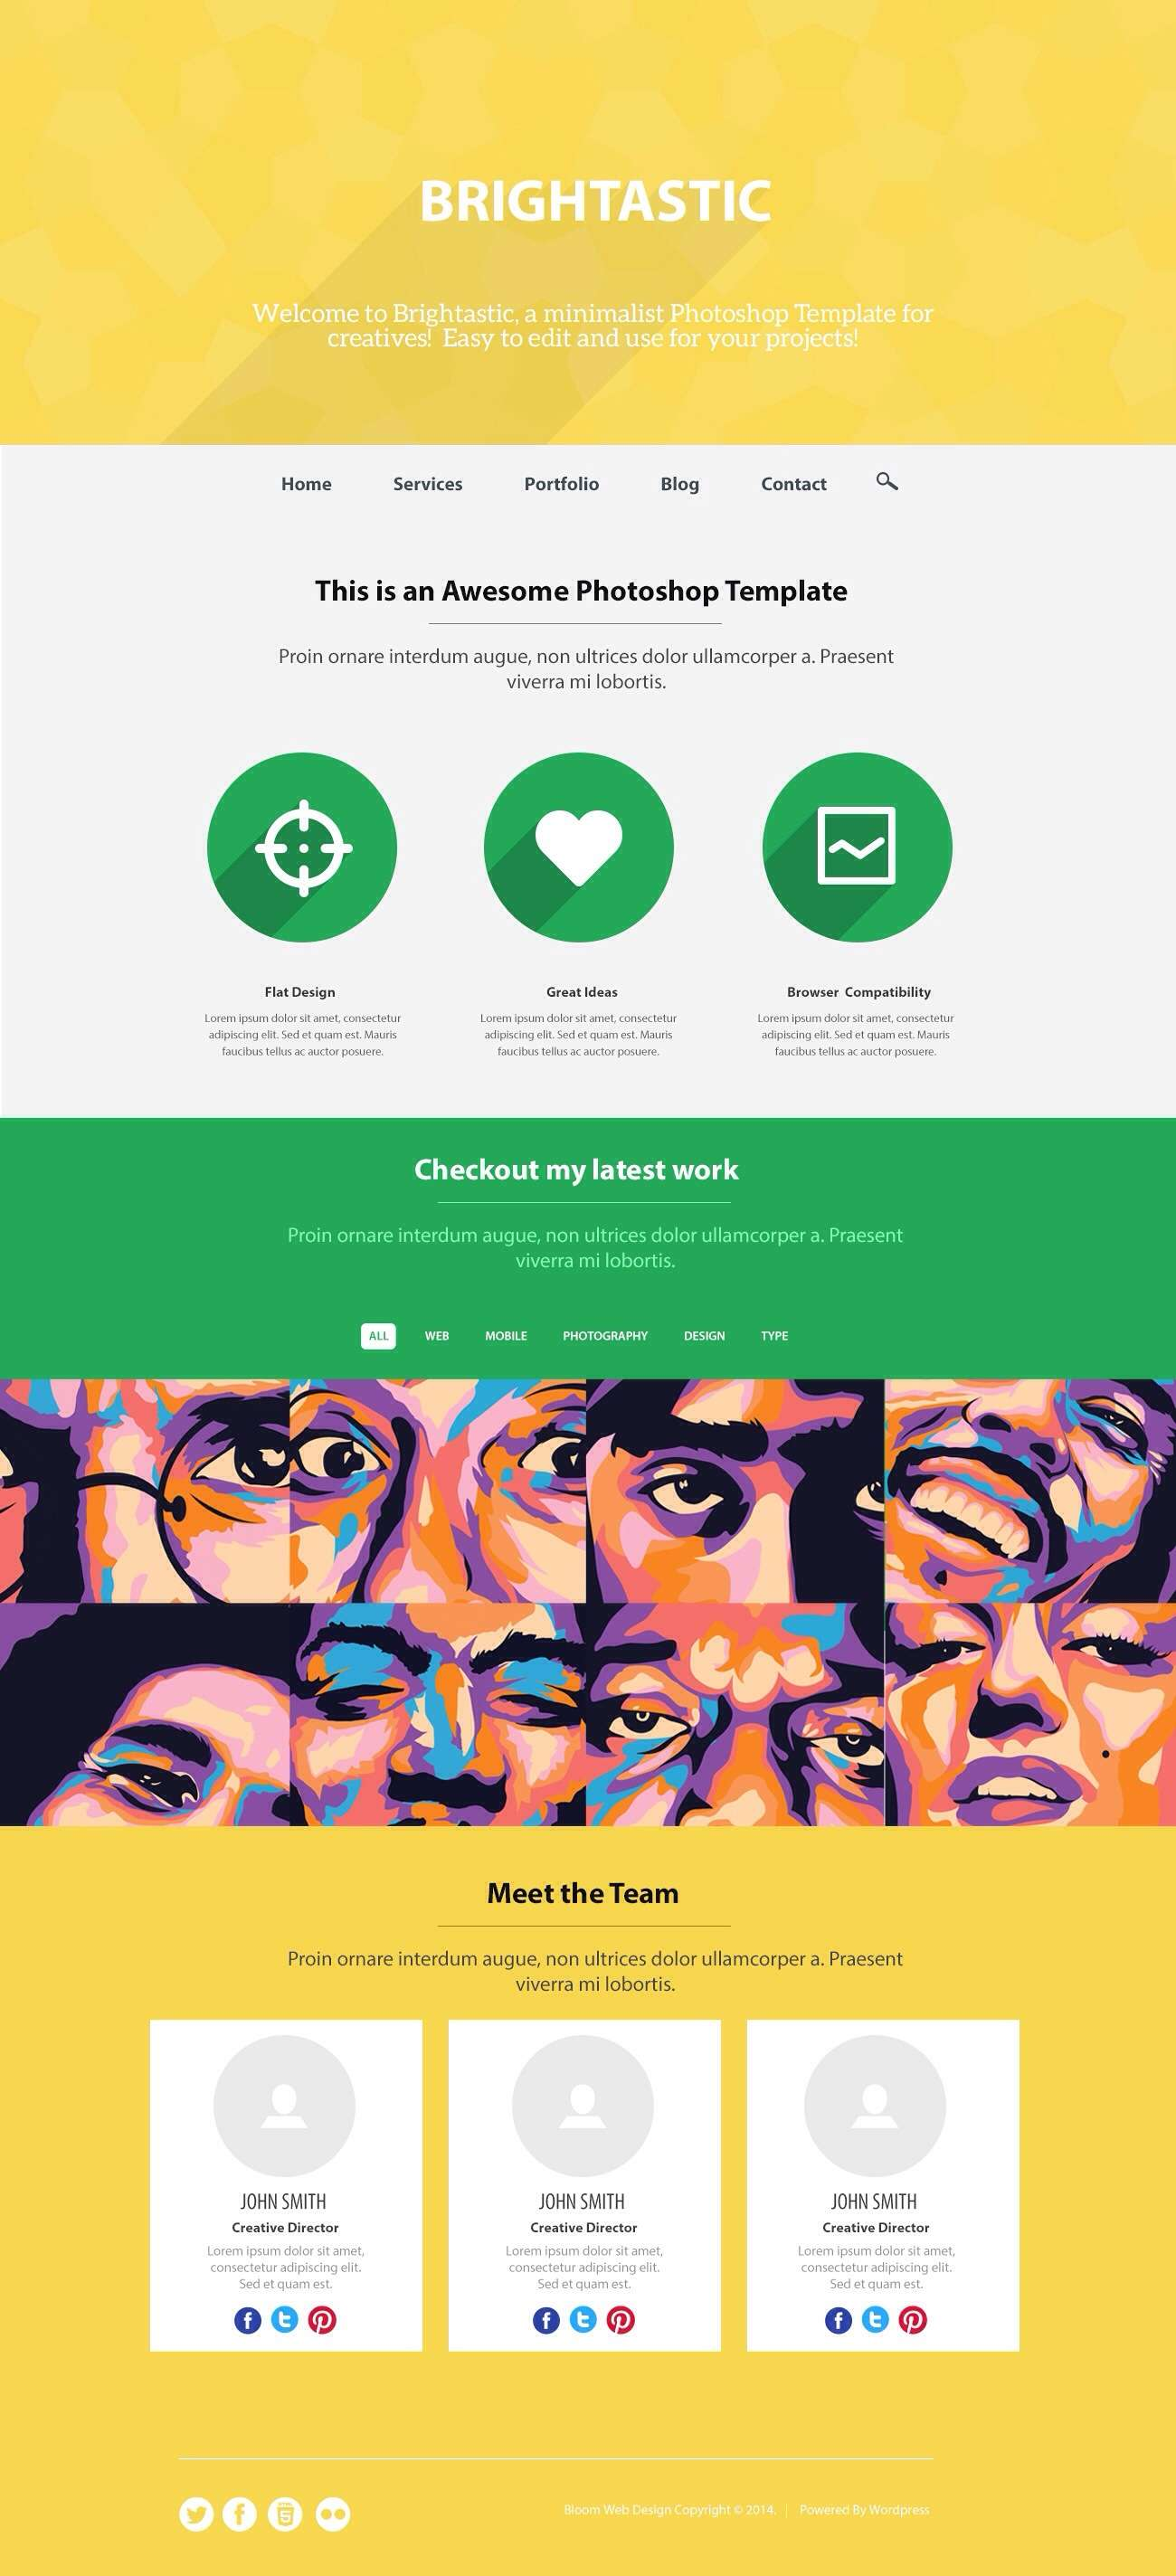 Brightastic: Free Website PSD One Page Template